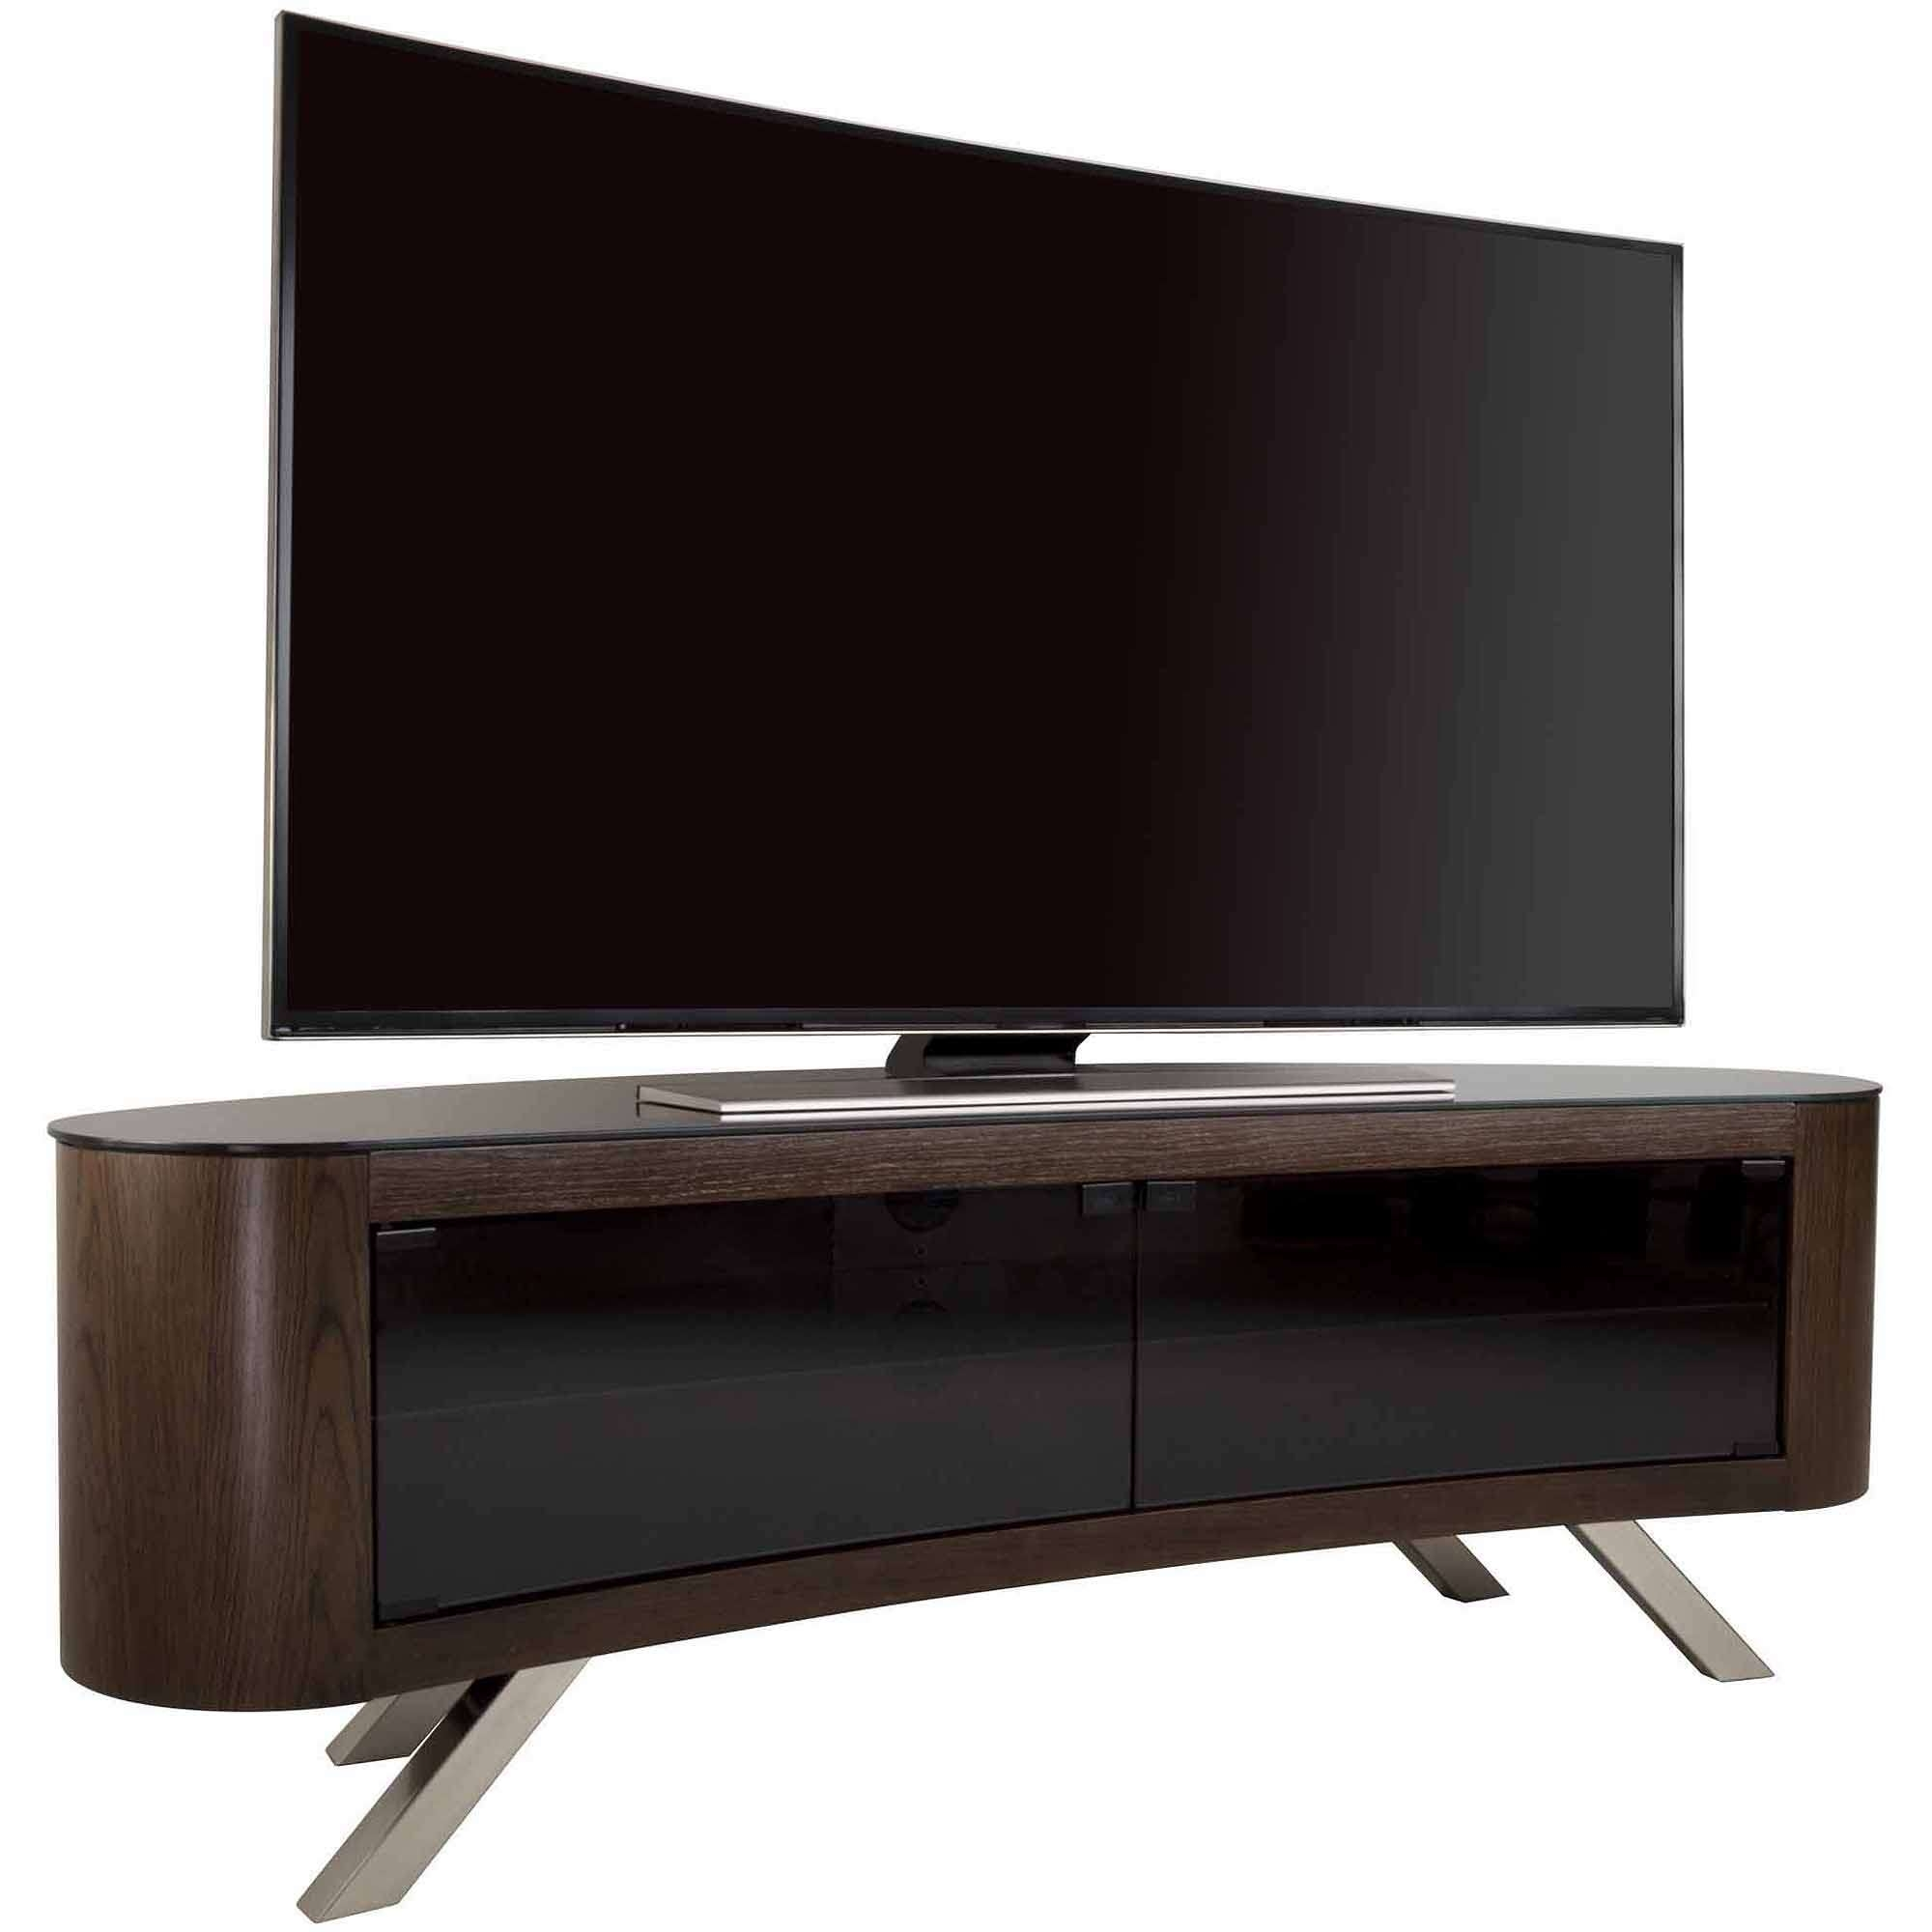 Tv Stand For Inch Flat Screen 0e2b4cfbe0e8 1 Furnitures Avf Bay Within Tv Stands For 70 Flat Screen (View 6 of 15)